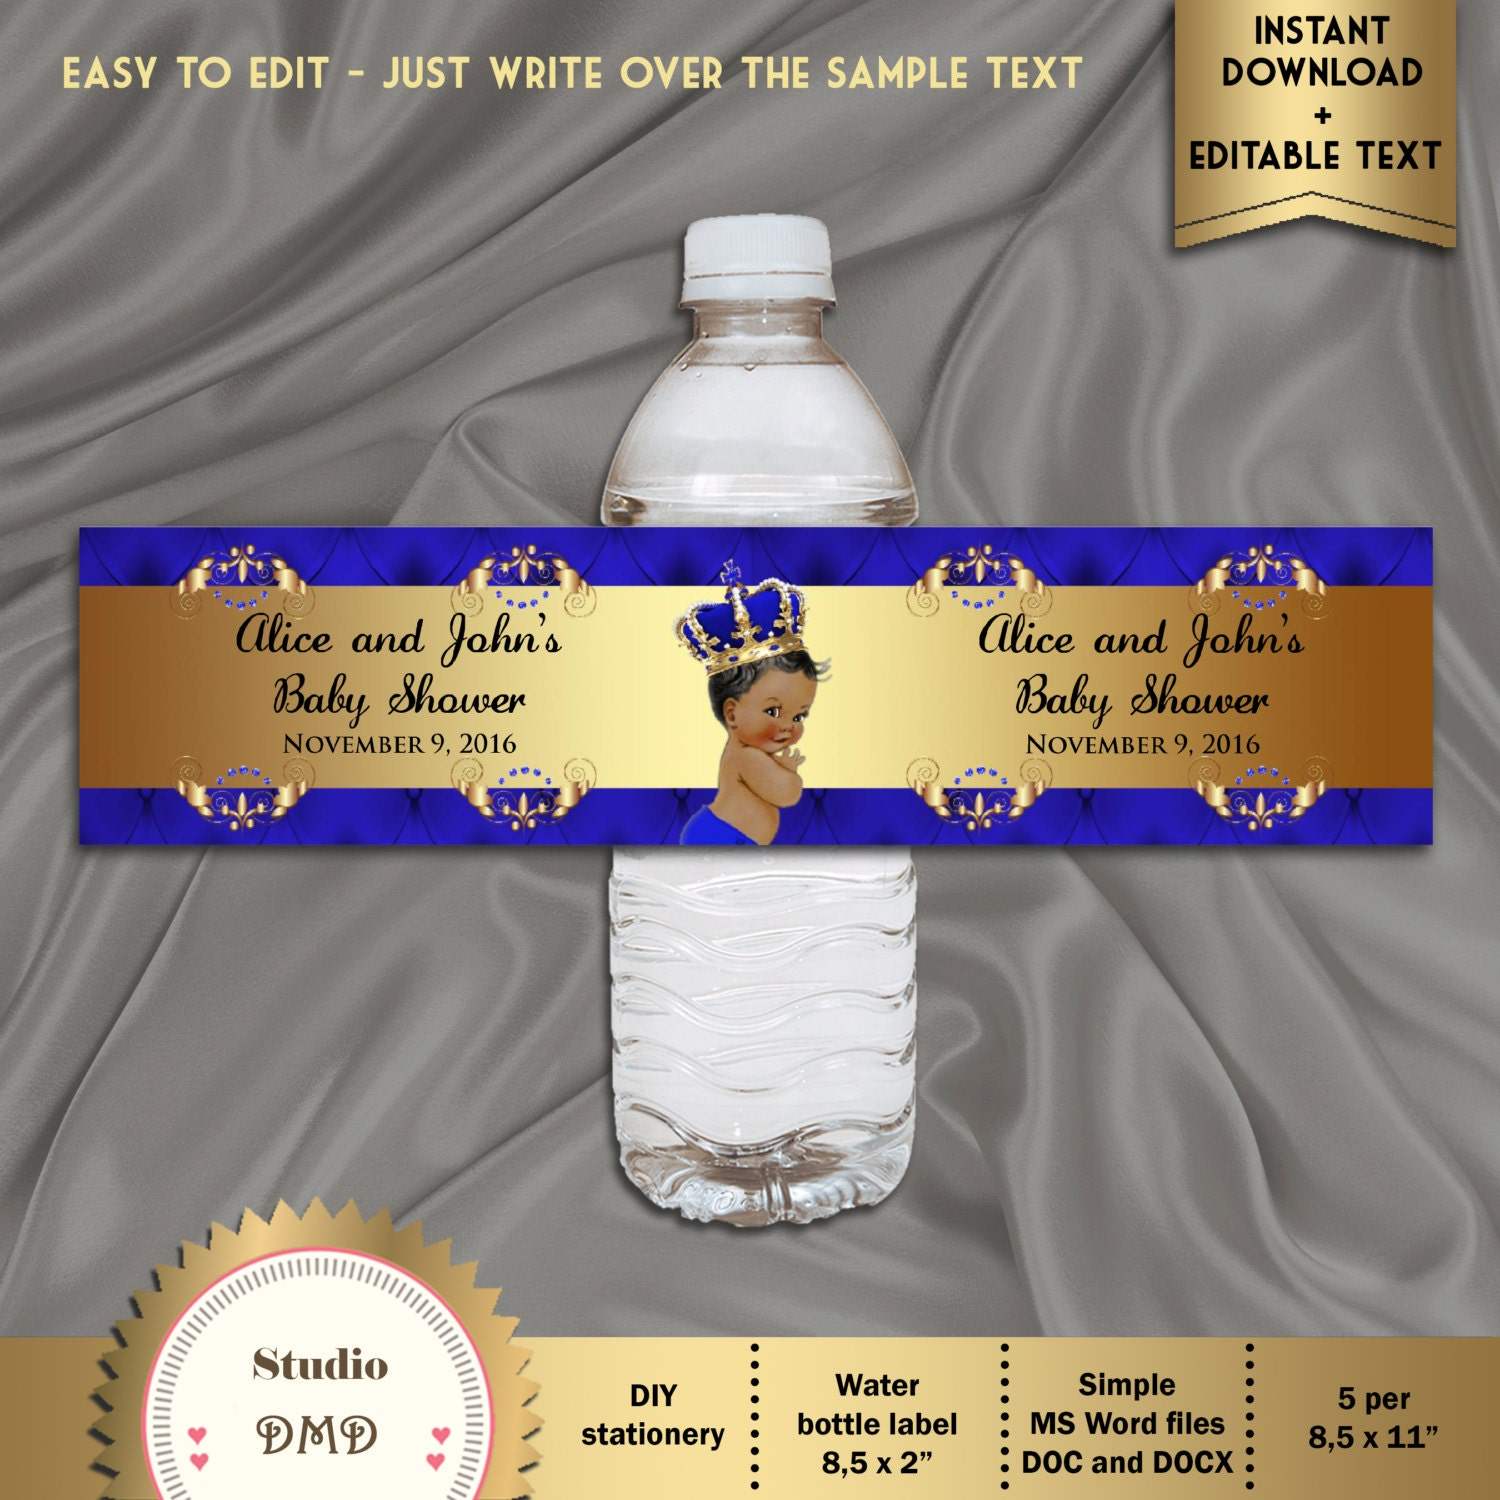 Exceptional image inside free printable water bottle labels for baby shower